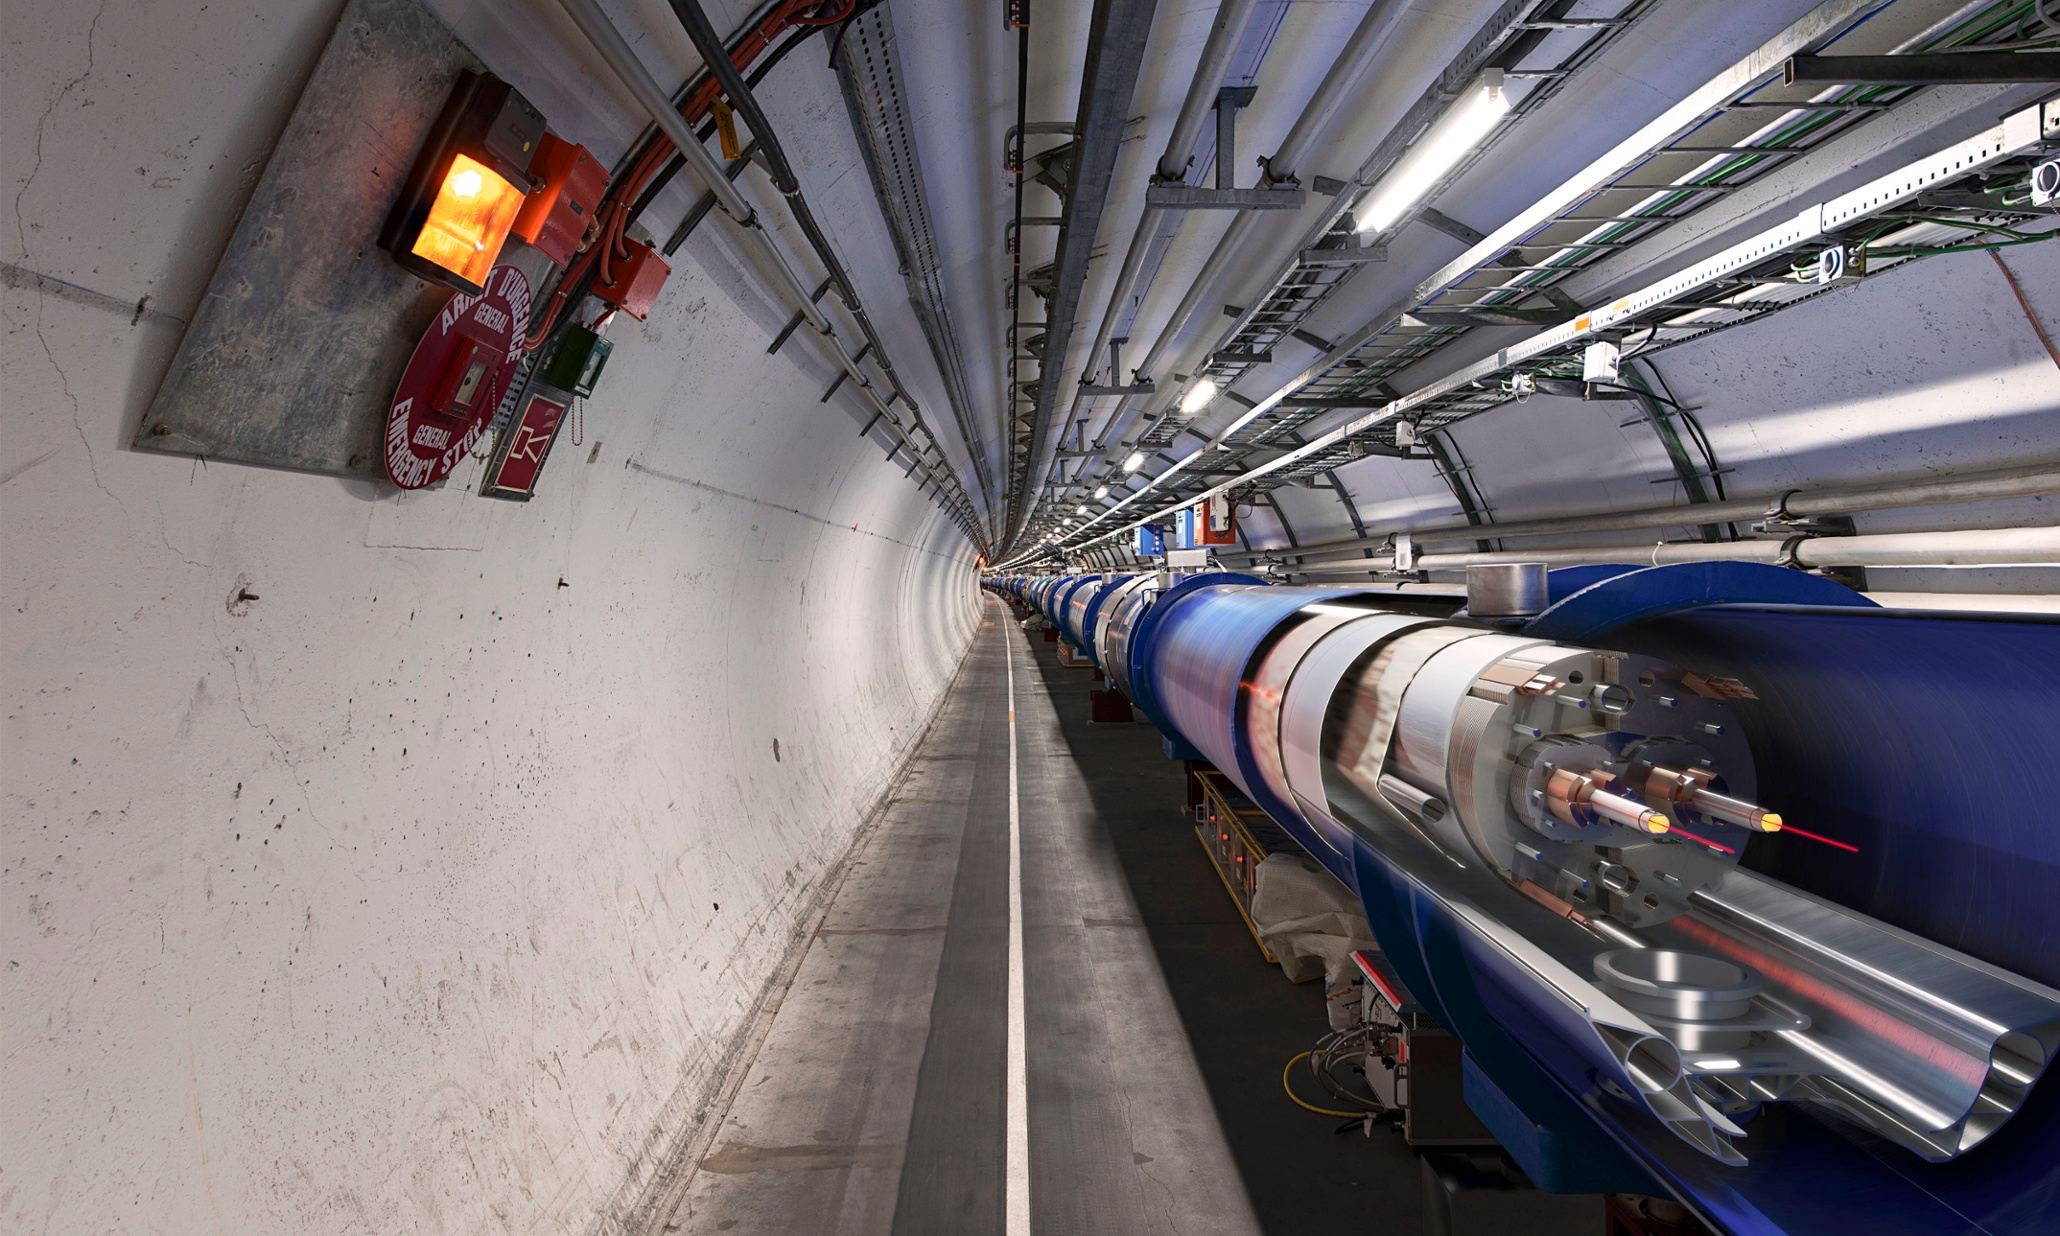 Large Hadron Collider ramps up to shed light on dark matter